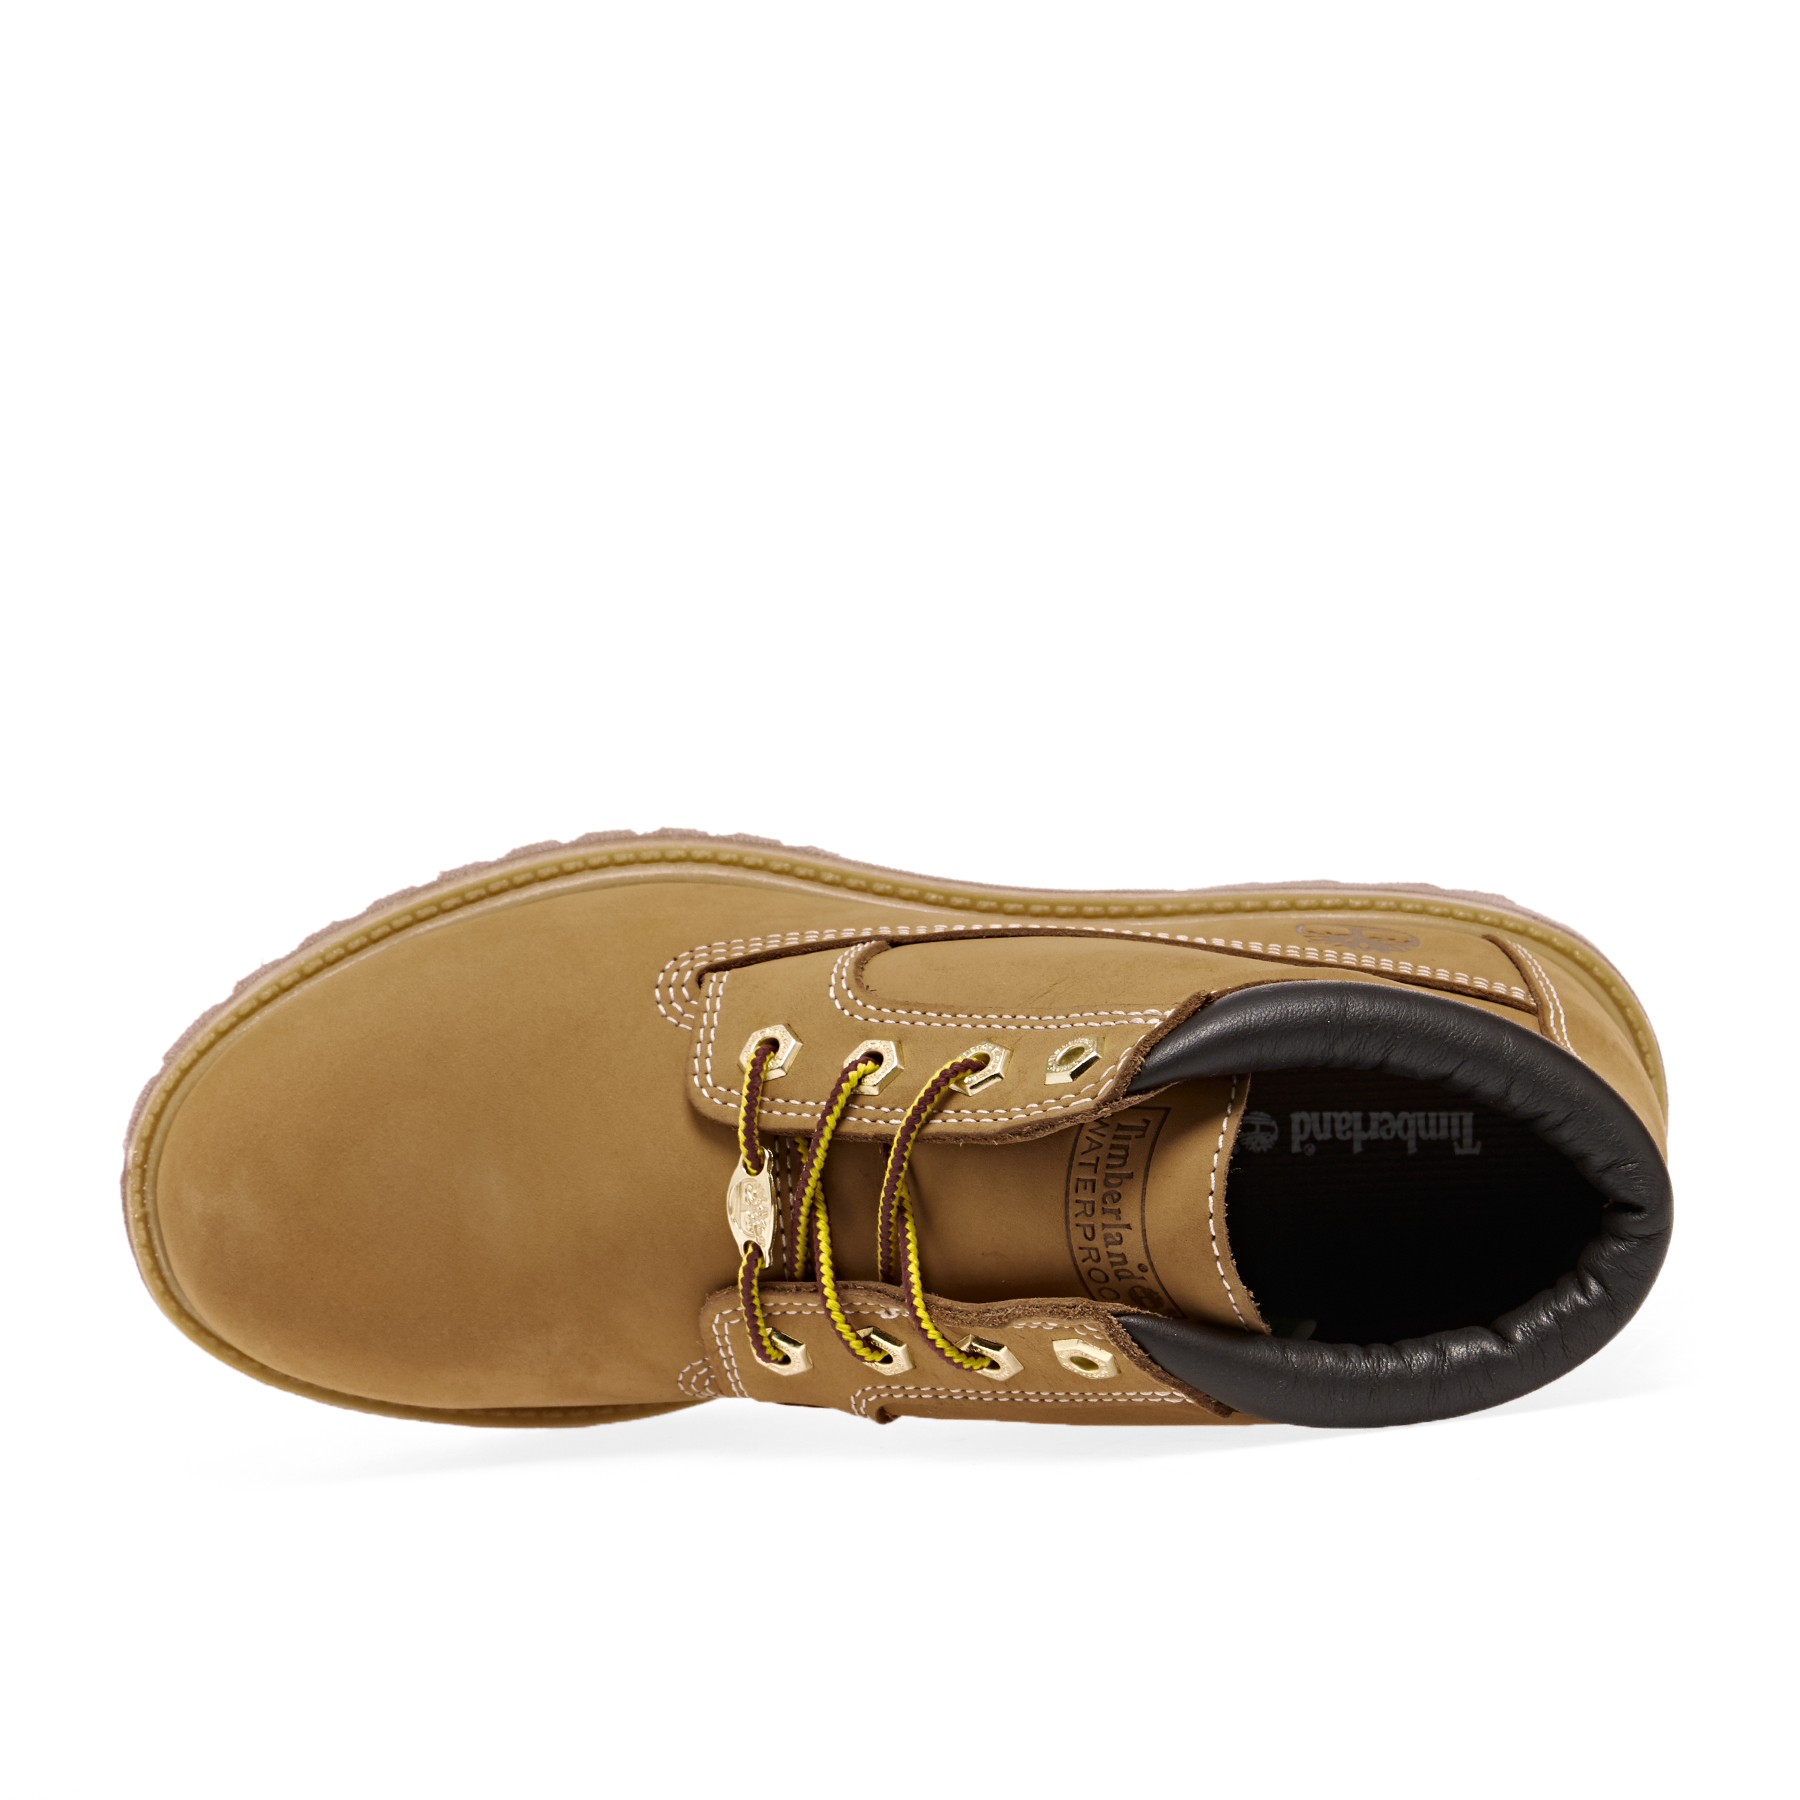 Timberland AF Nellie Chukka Double Wheat 23399 (TI56 a) shoes